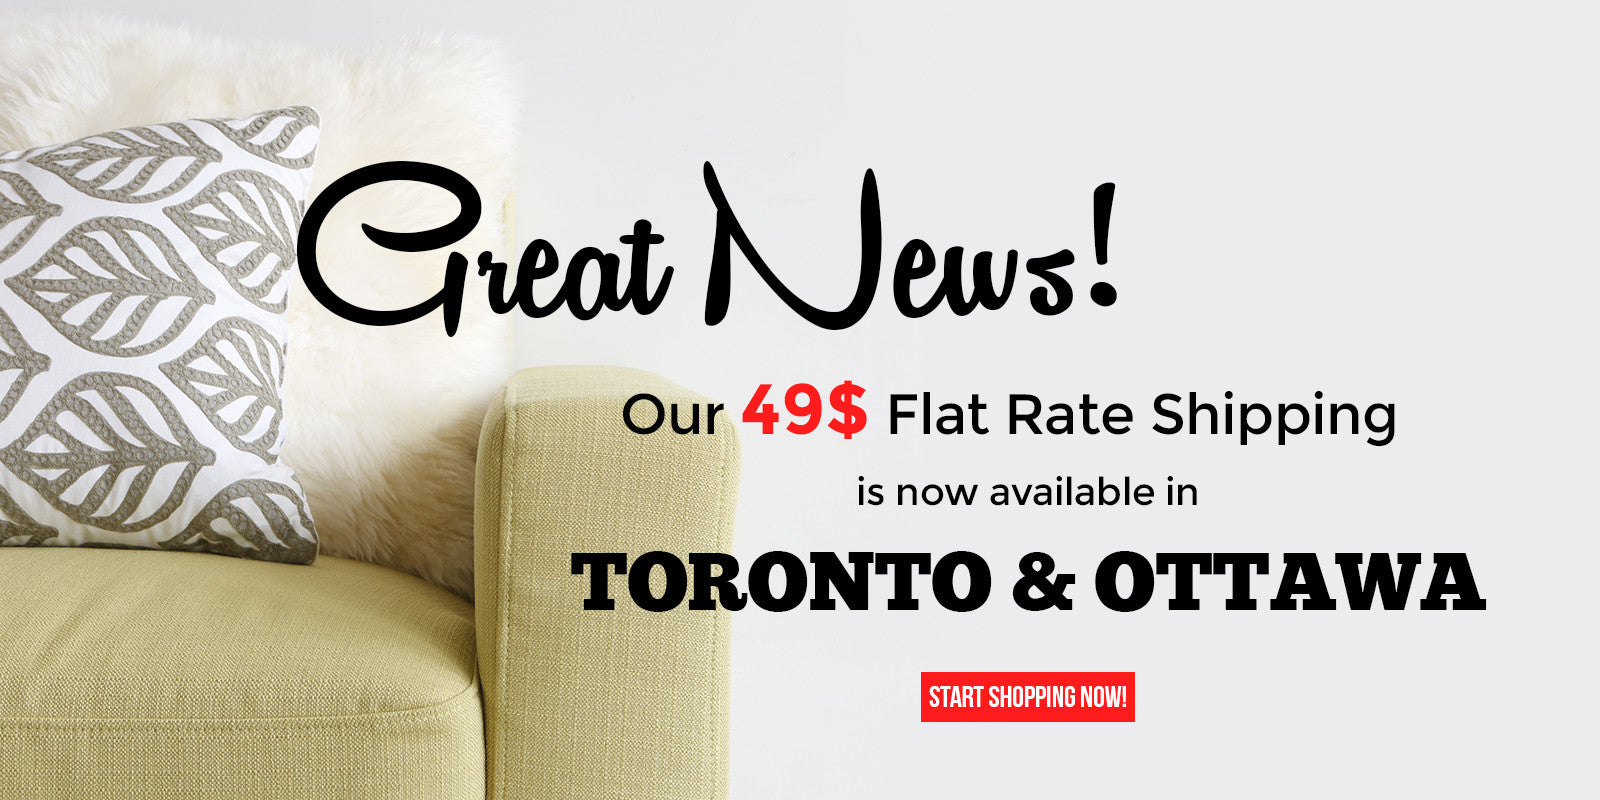 Furniture for sale in Toronto and Montreal - Newell Furniture